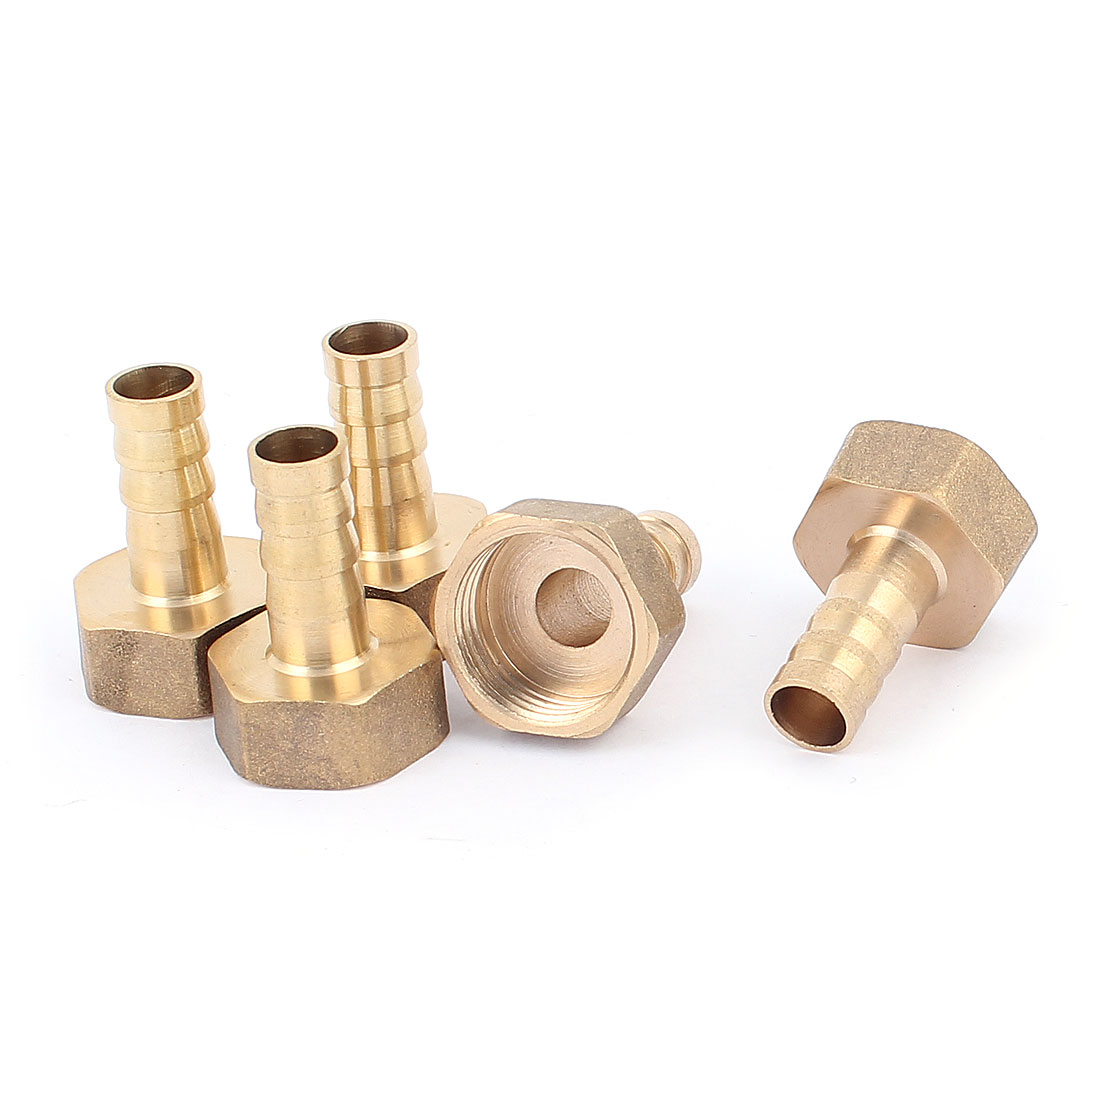 25mm x 33mm Female Hose Barb Adapter Fitting Brass Tone 5 Pcs